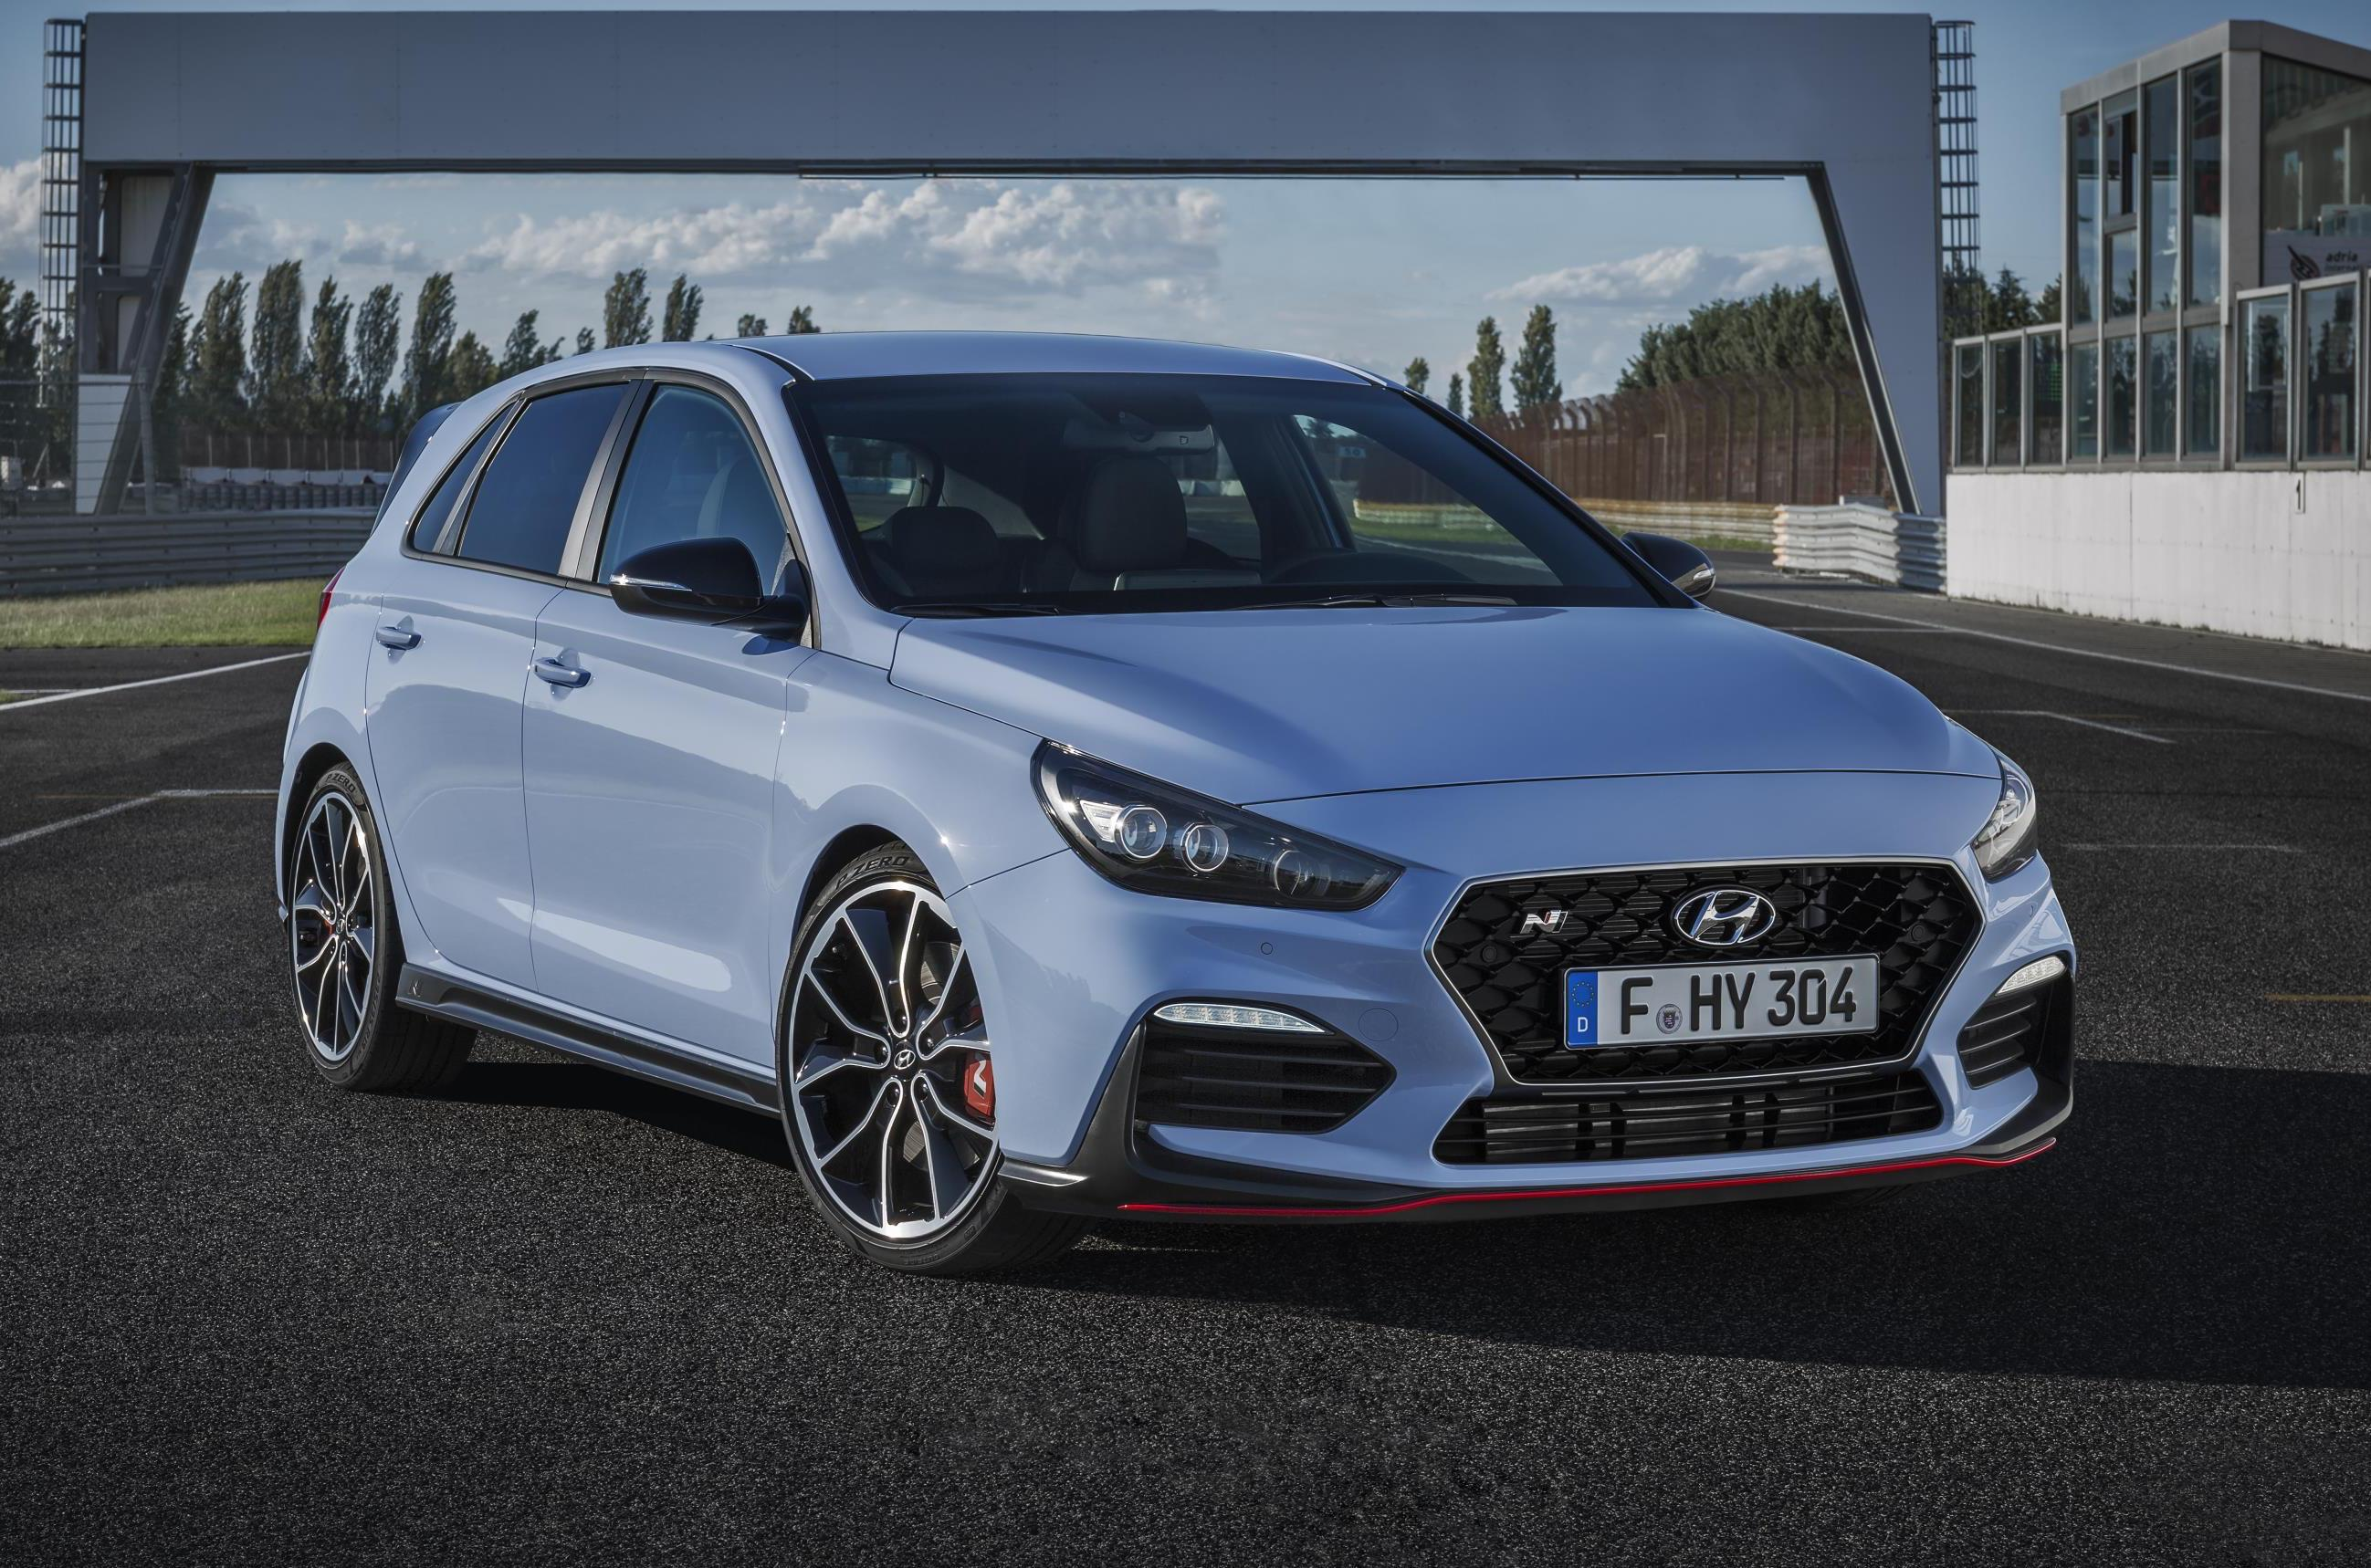 hyundai neue modelle 2018.  modelle 2018 hyundai i30 n officially revealed allnew hot hatch video with hyundai neue modelle